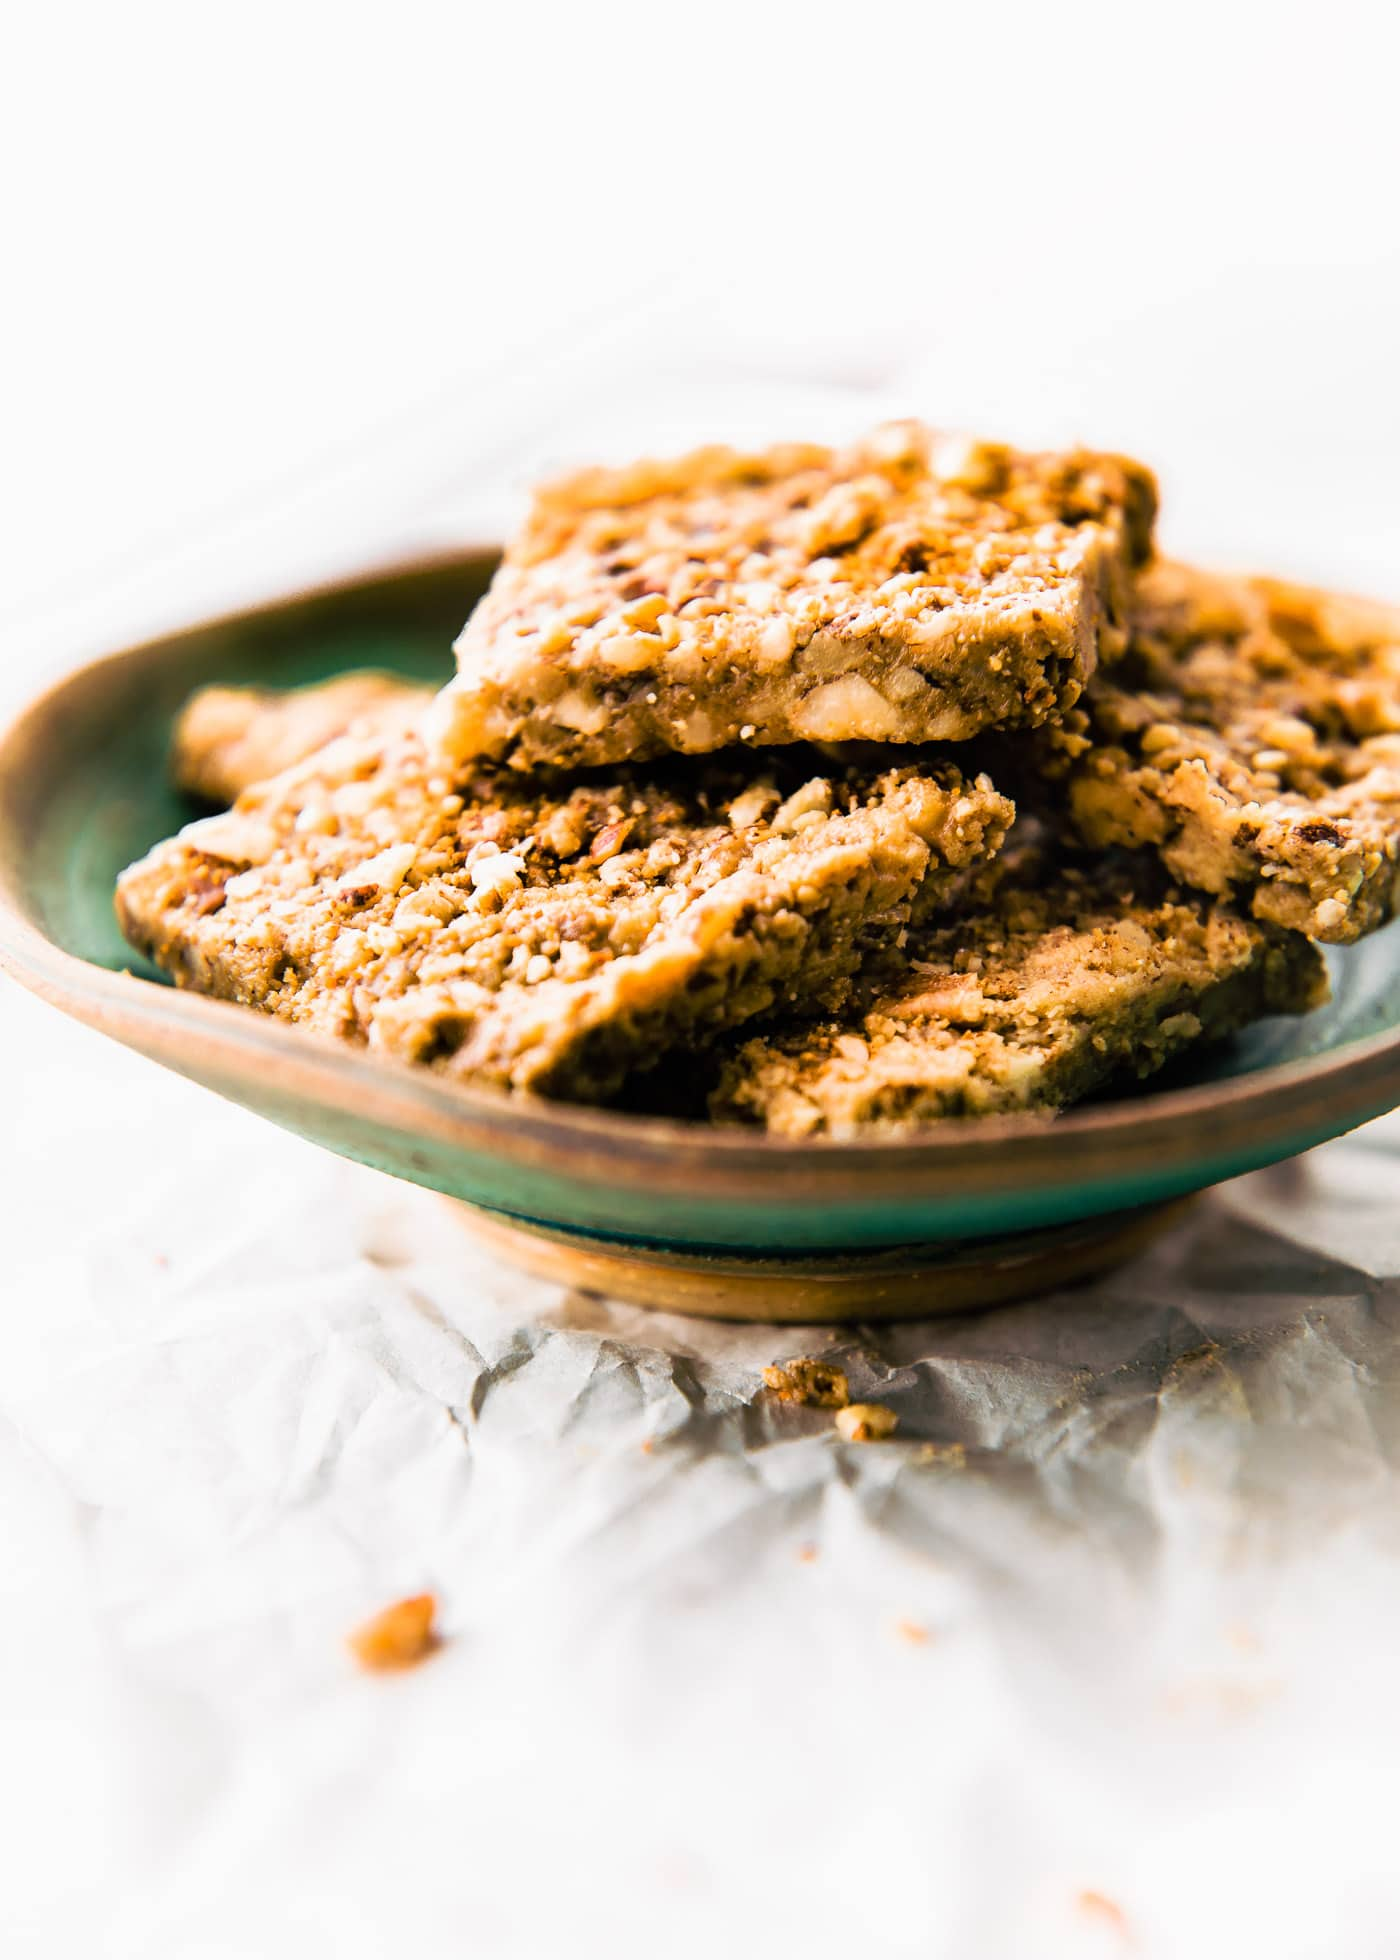 Paleo Baklava Flavored Bars layered in a bowl